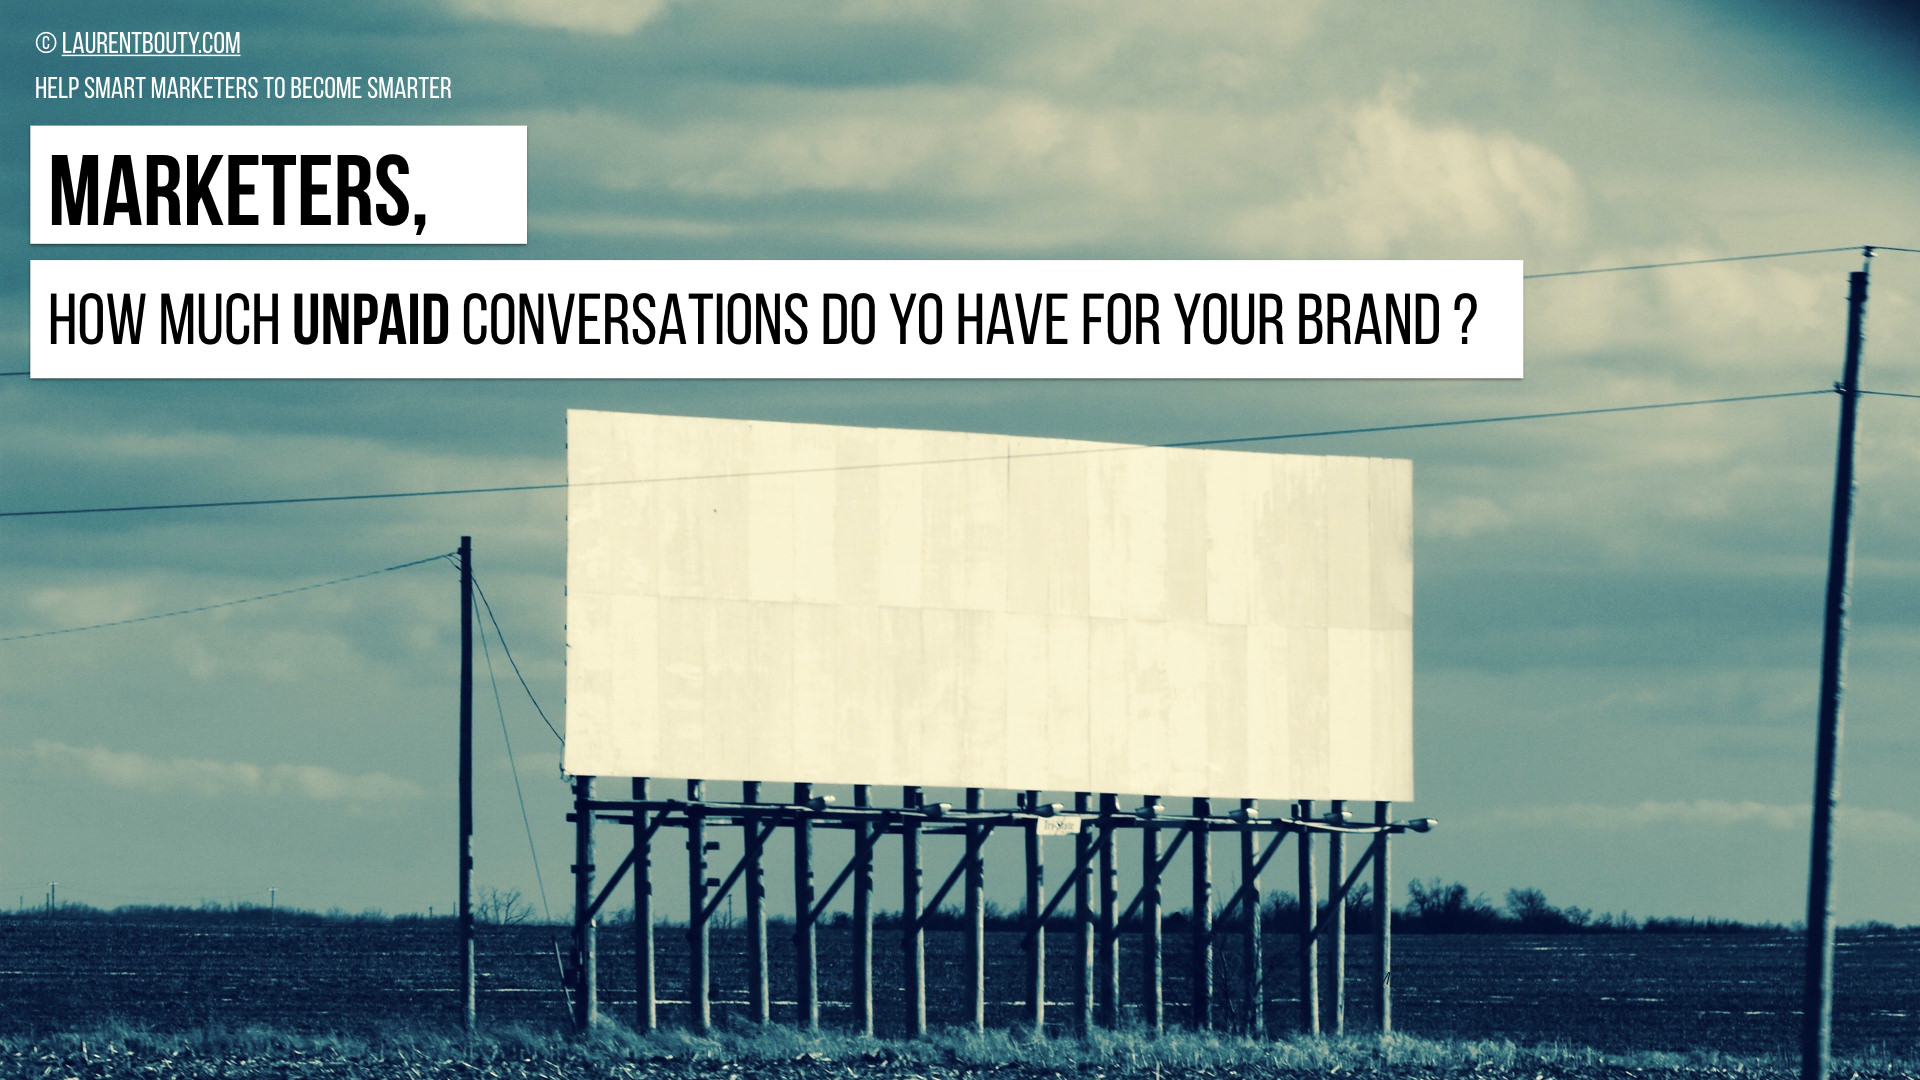 How Much Unpaid Conversations Do You Have For Your Brand